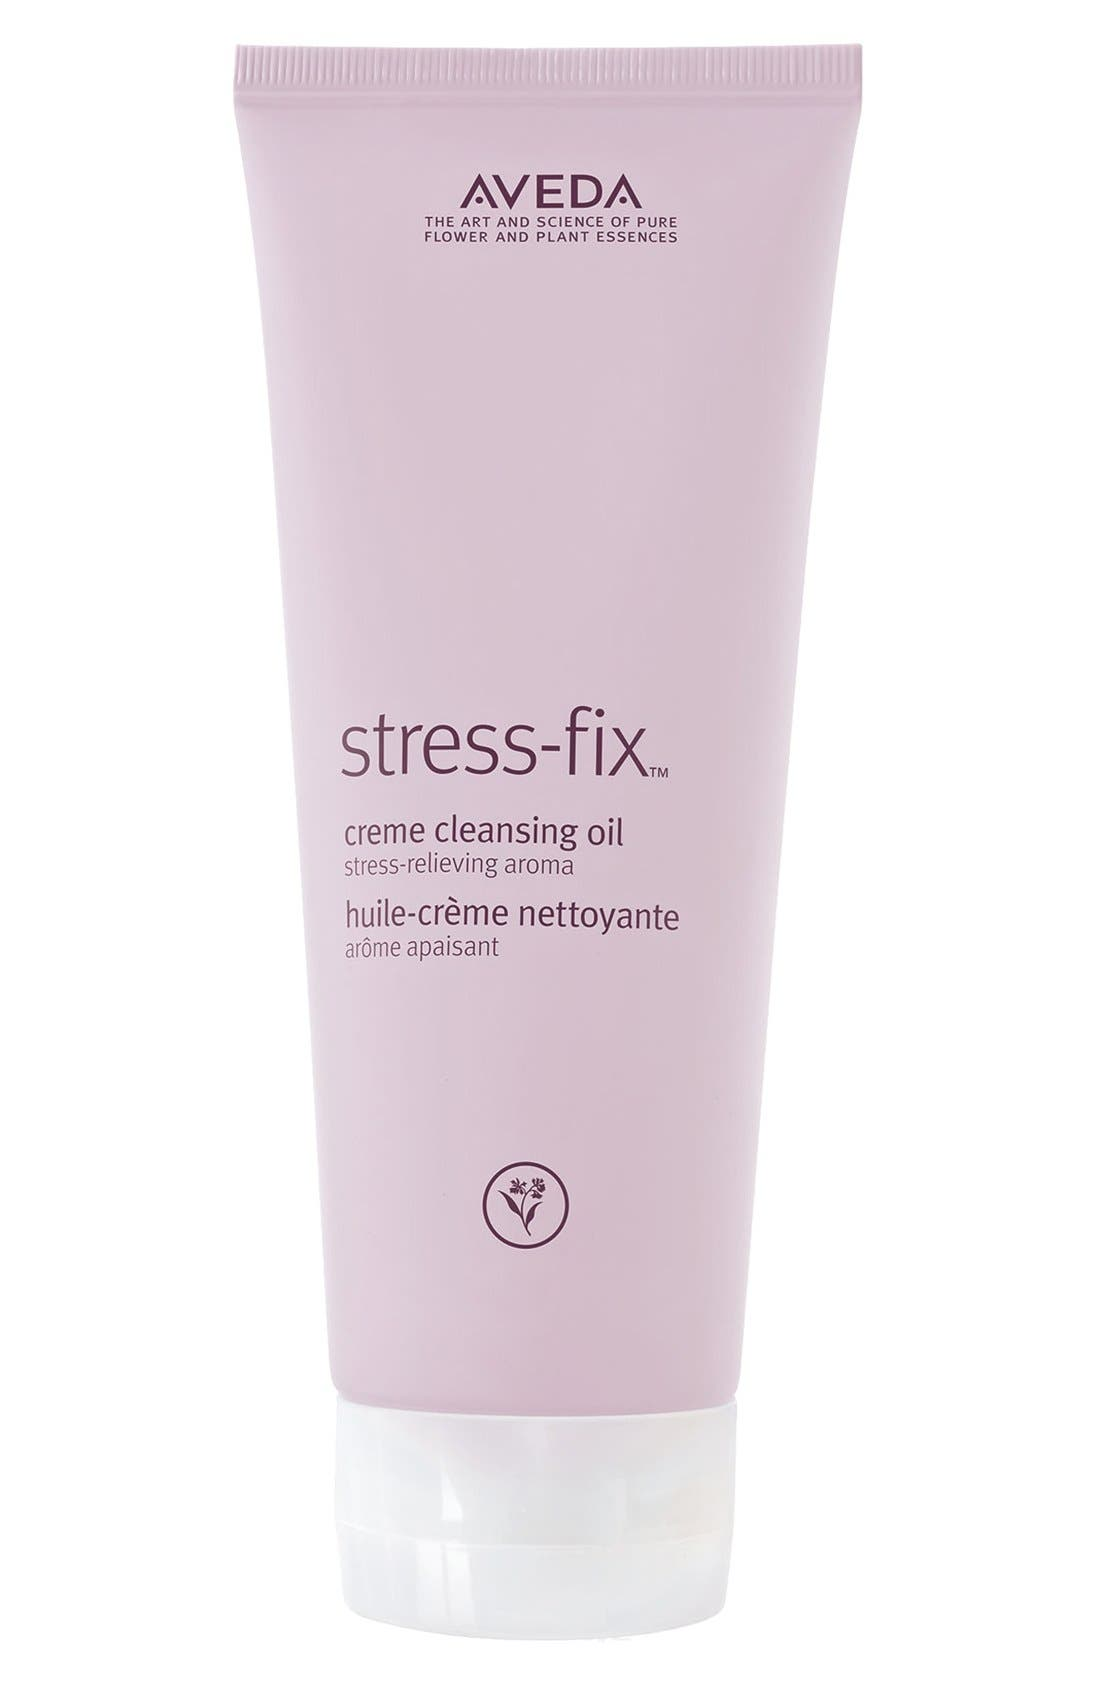 Aveda 'stress-fix™' Crème Cleansing Oil